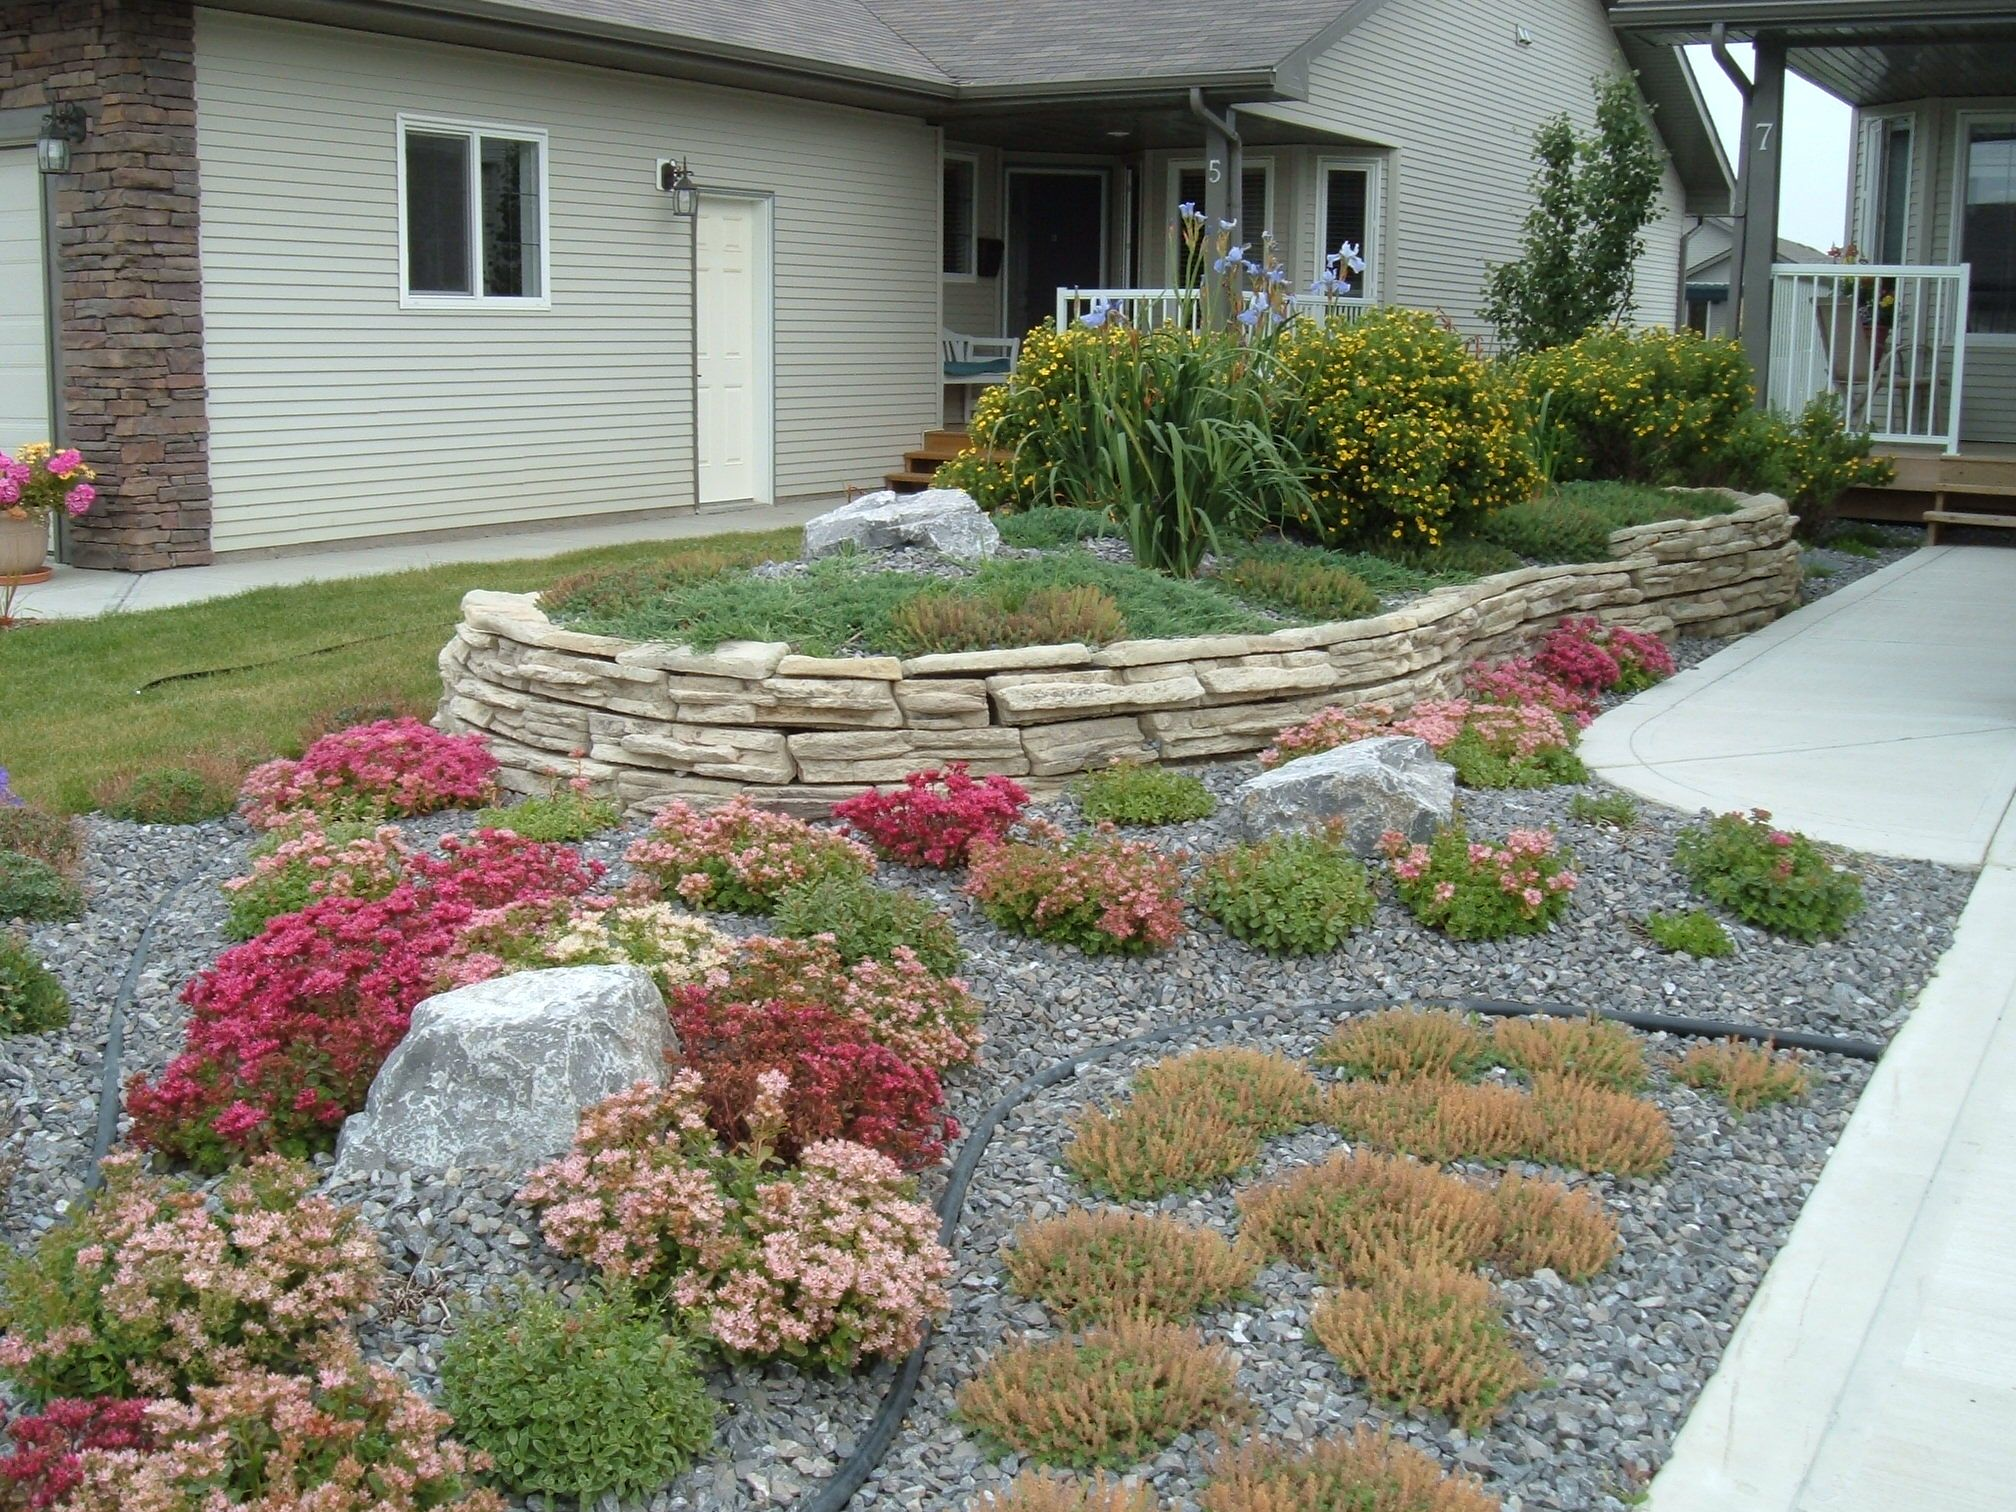 minimal maintenance landscaping